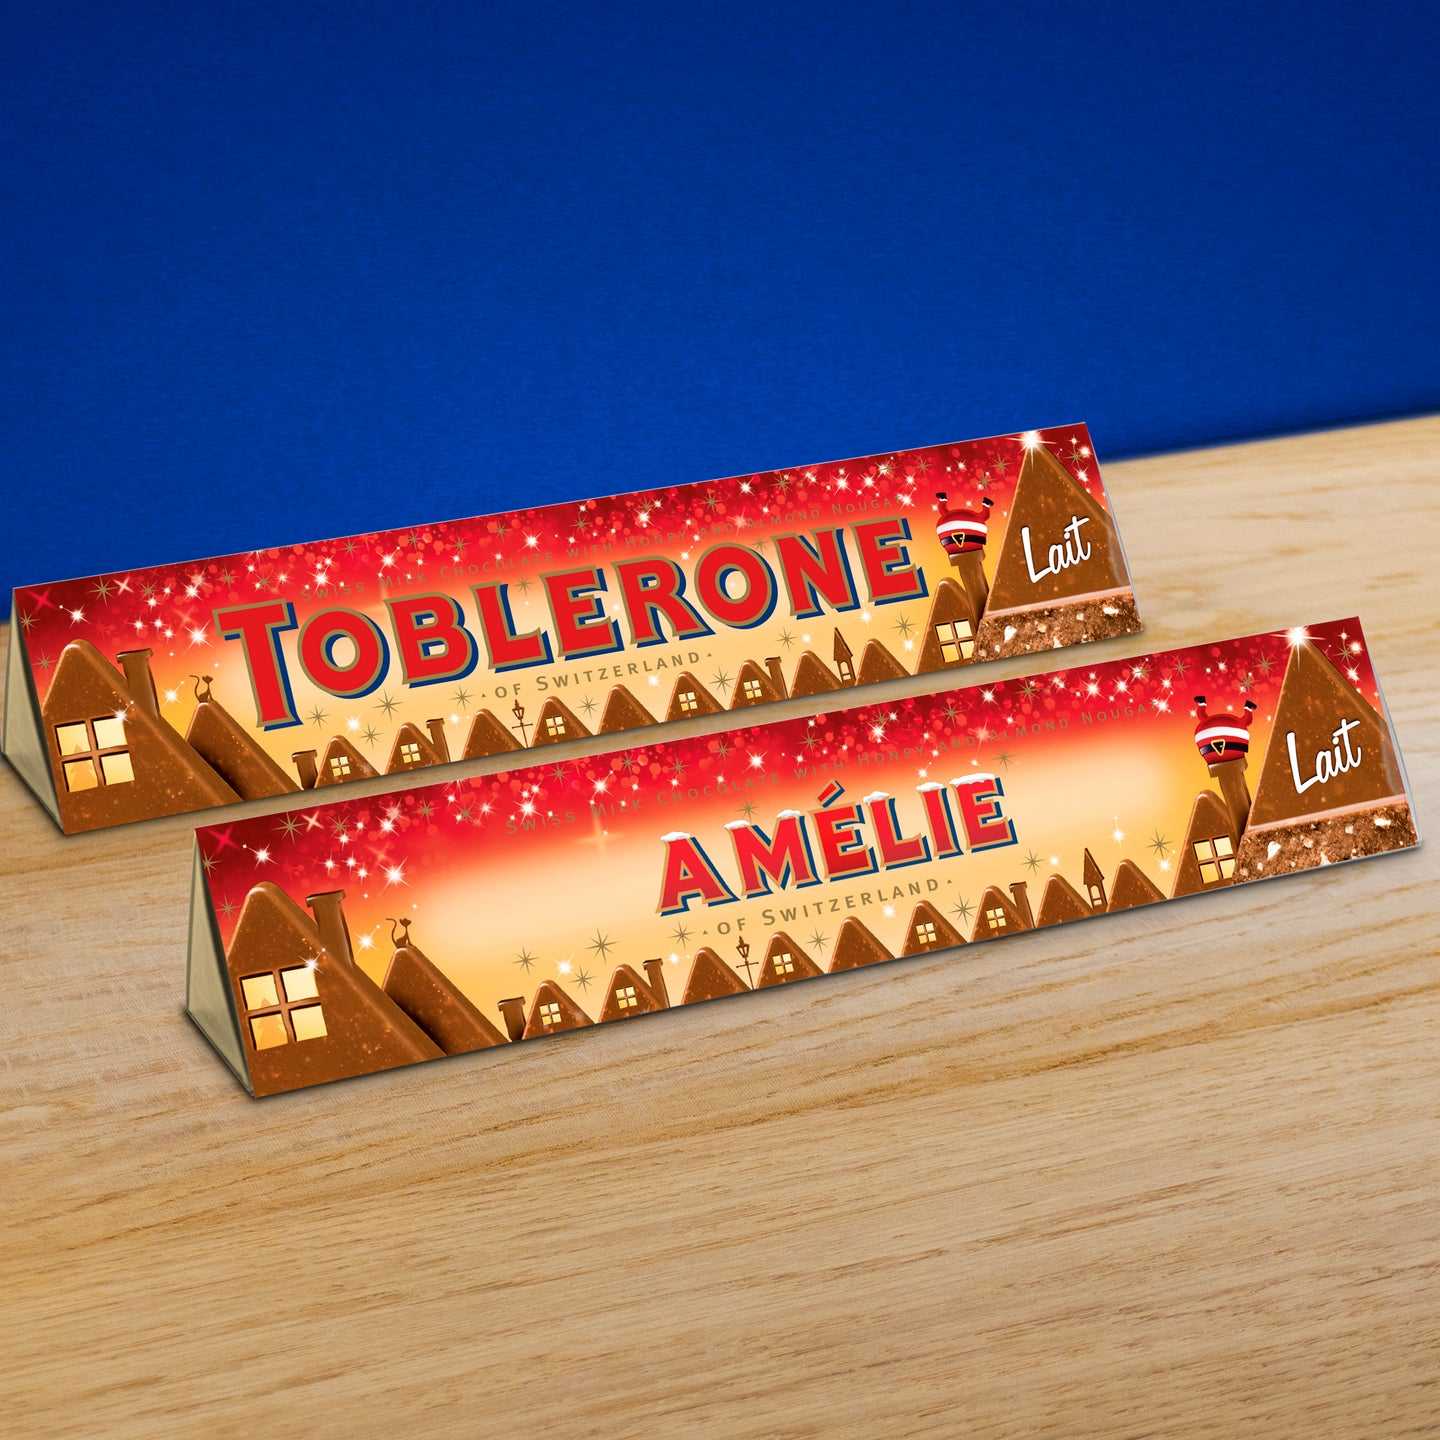 360g Toblerone with Christmas scene personalised sleeve